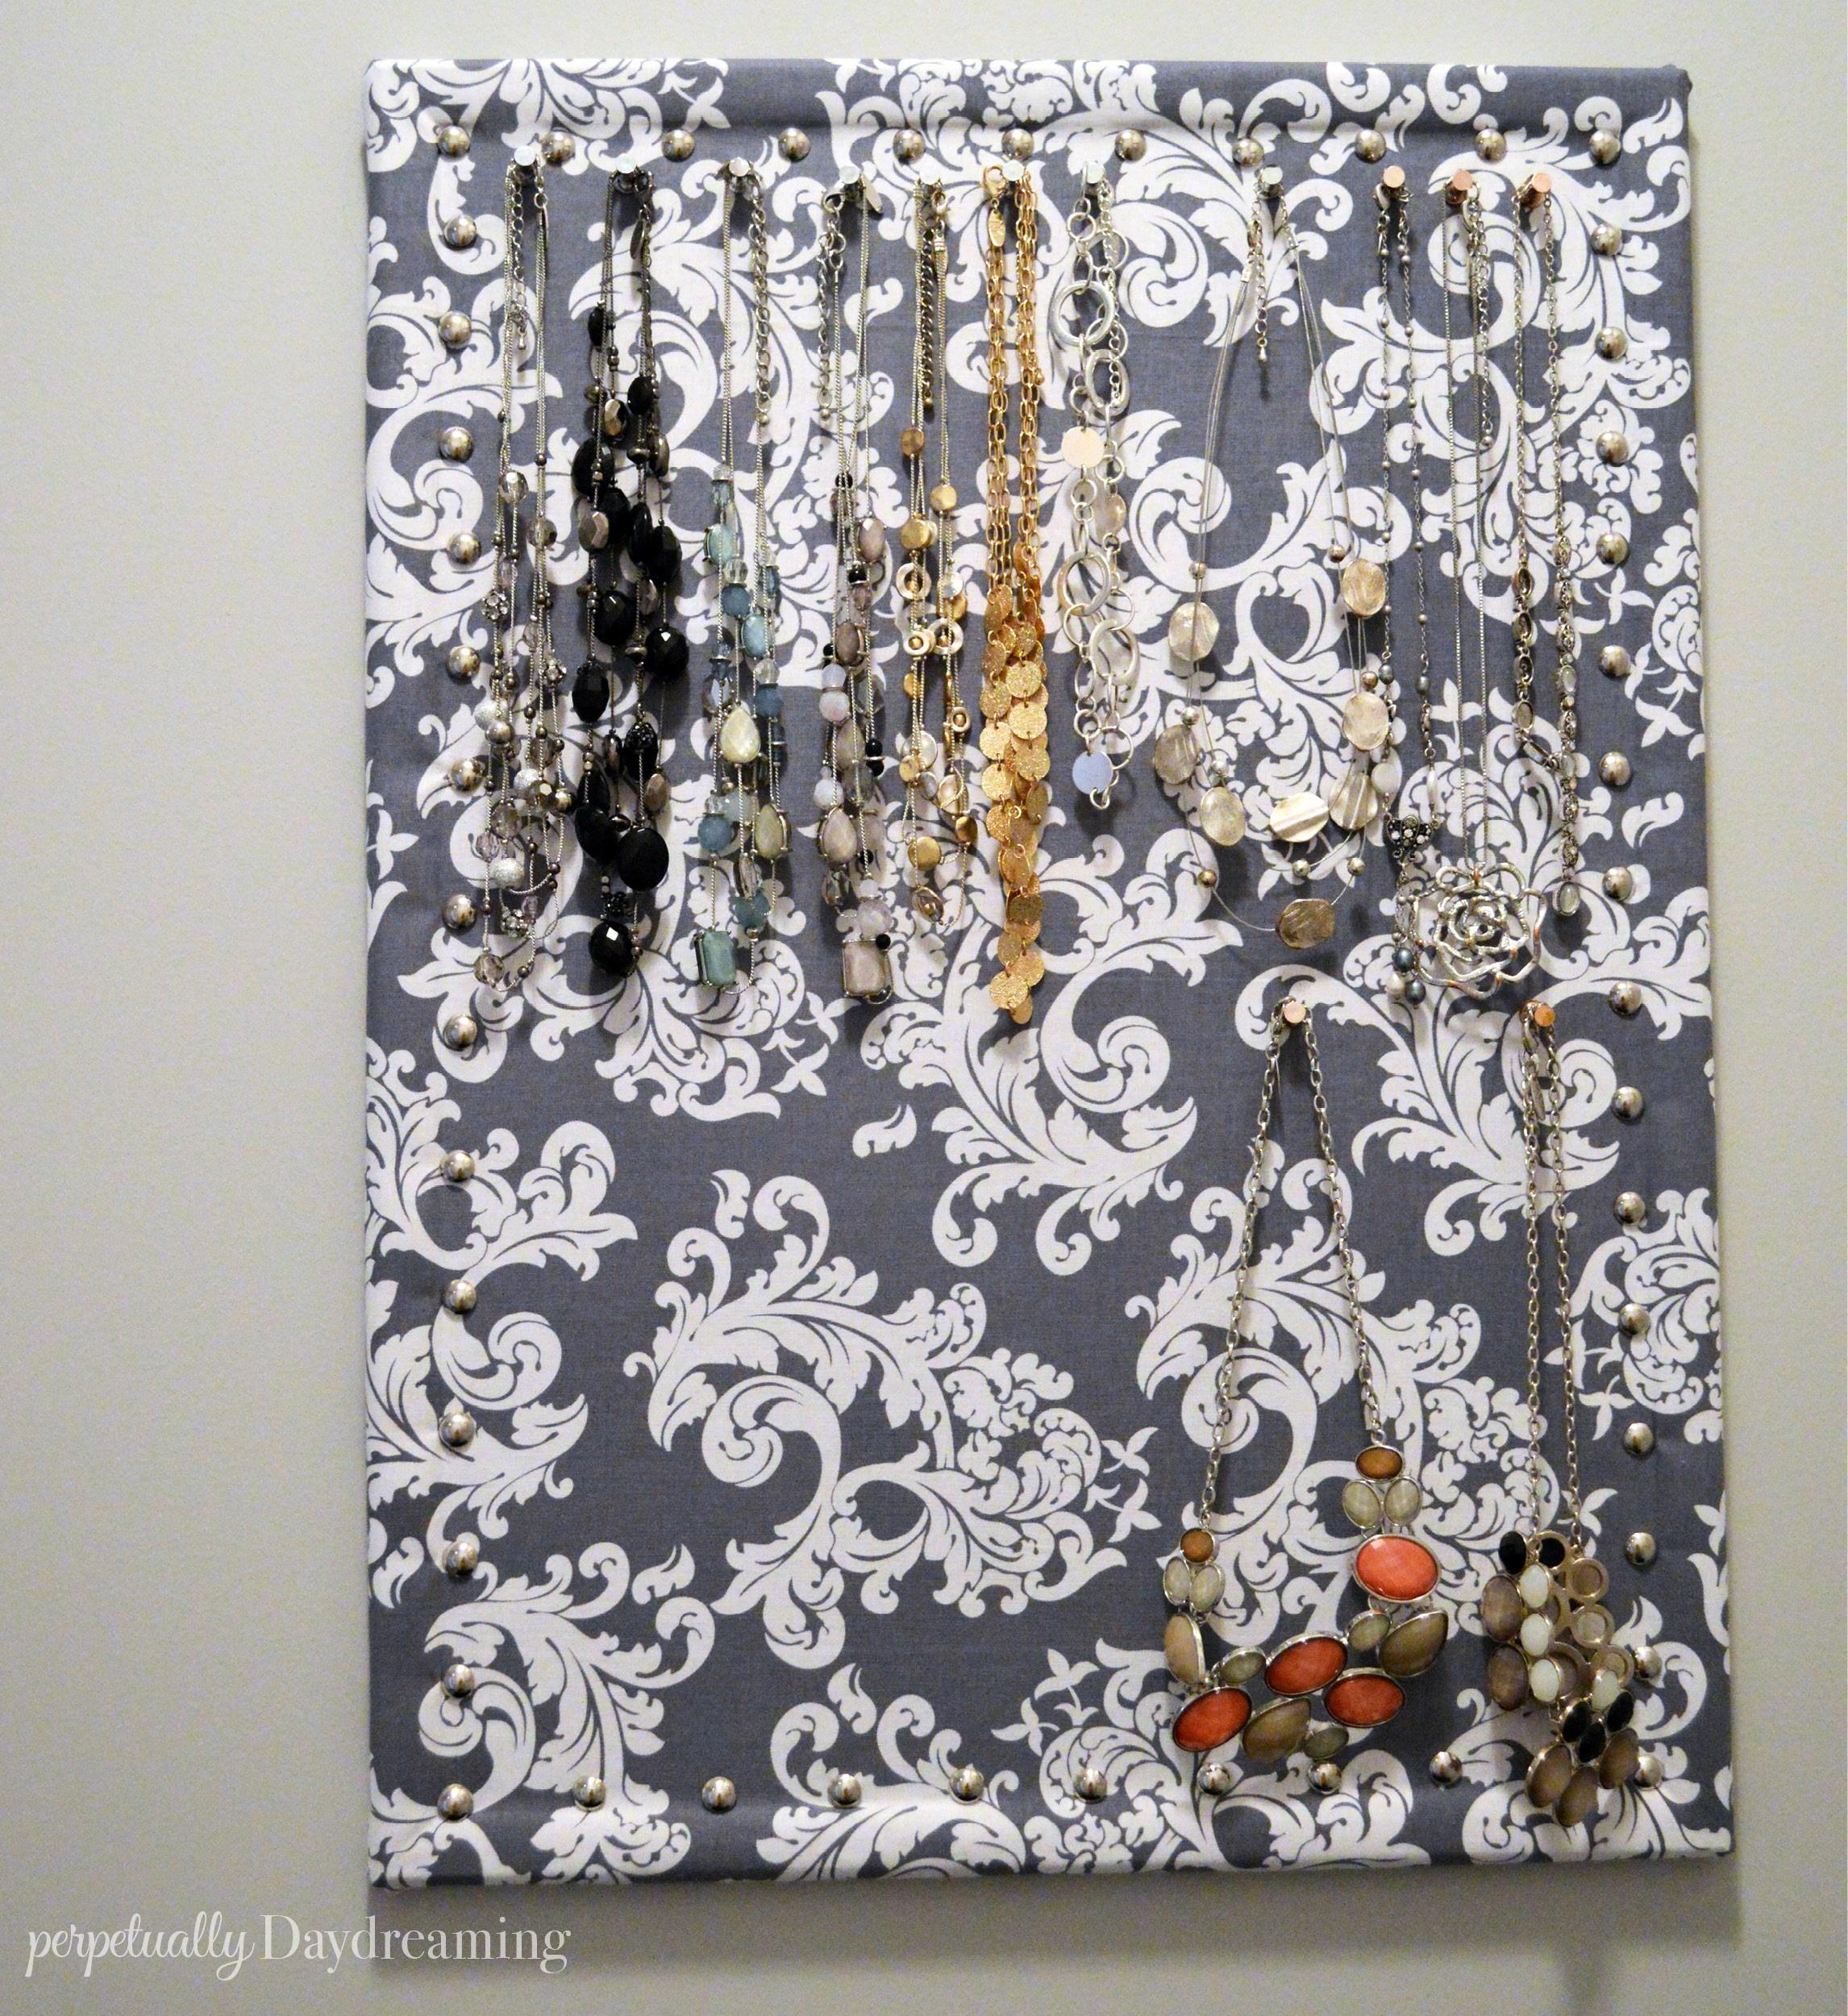 Easy Diy Jewelry Board Perpetually Daydreaming